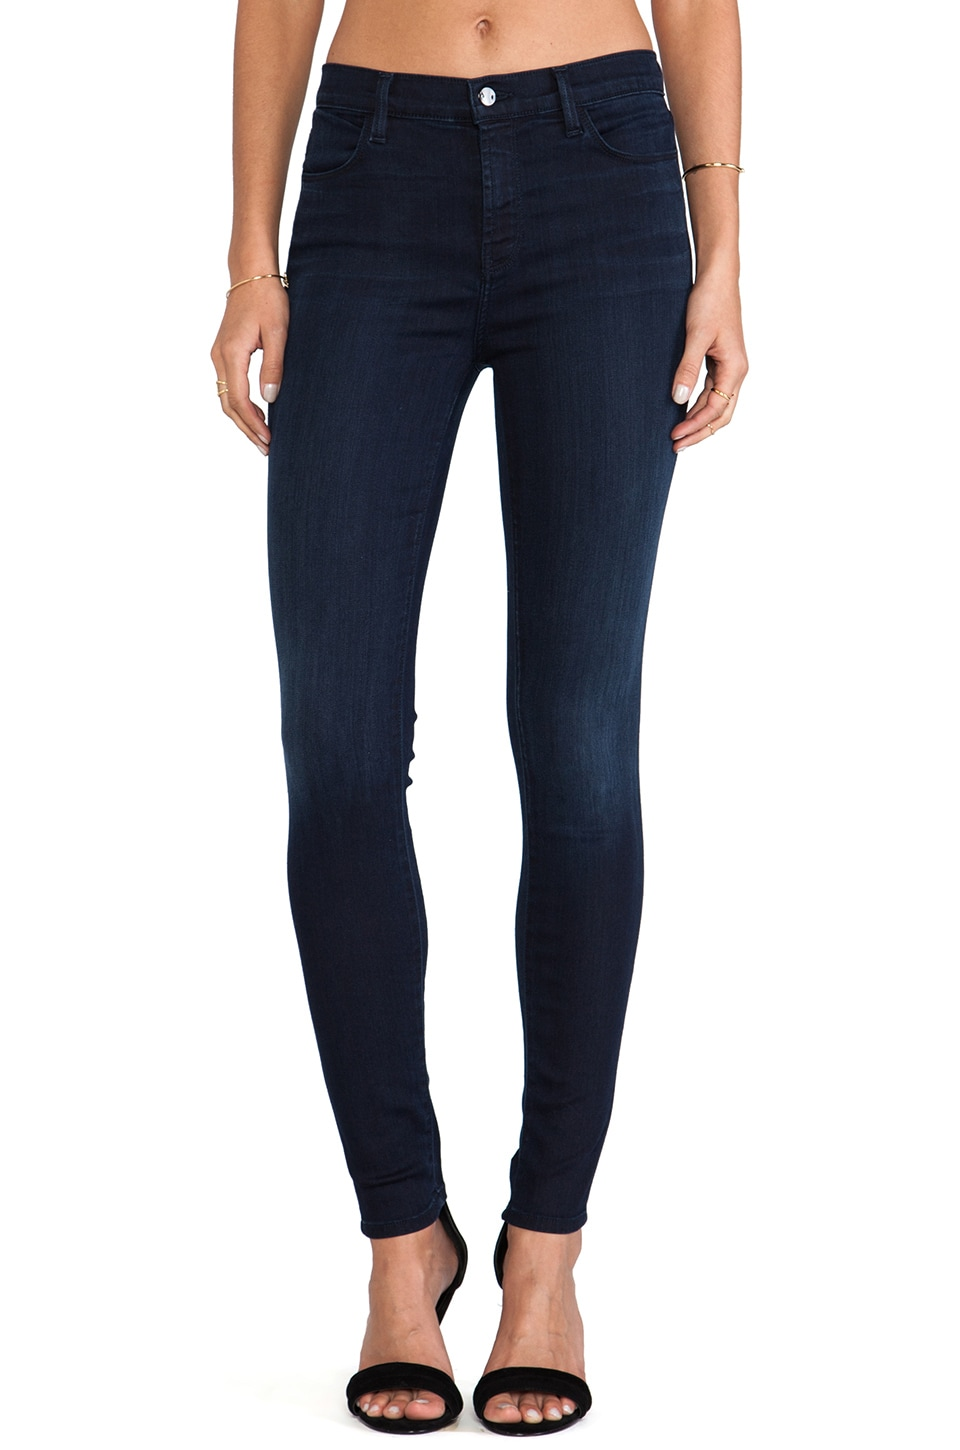 J Brand Maria Highrise in Darkness